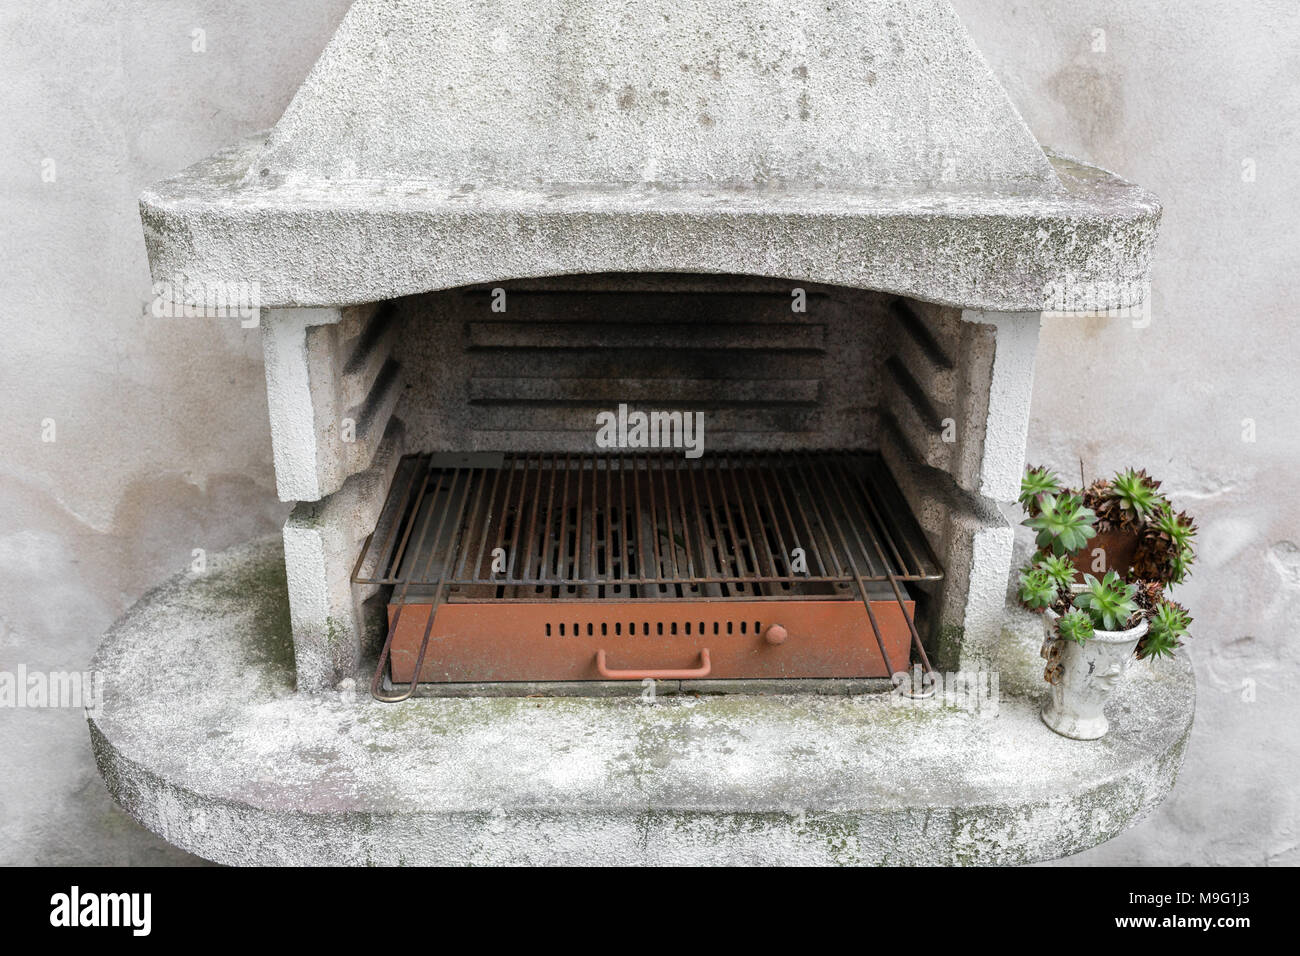 Smoky antique brick oven outdoor with ashes inside. Old garden heater. grill usable for BBQ. patio Vienna, Austria - Stock Image